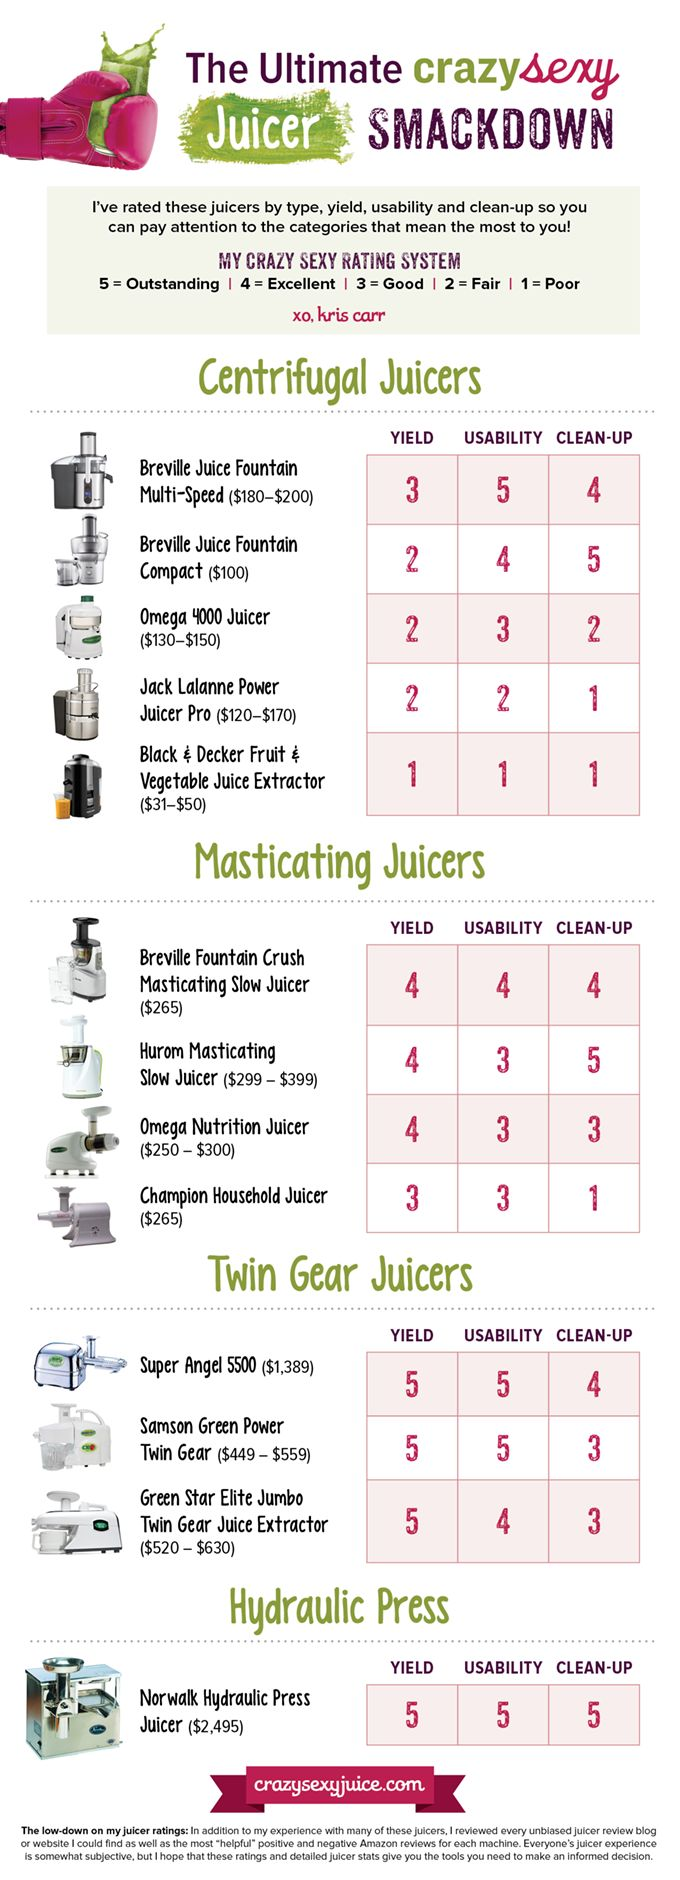 Interested in improving your lifestyle? Having a juicer in the kitchen is a great way to do that. Tasty and nutritious homemade juice is a great for any hour of the day. Find the best juicer today! http://www.bestjuicer-review.com/